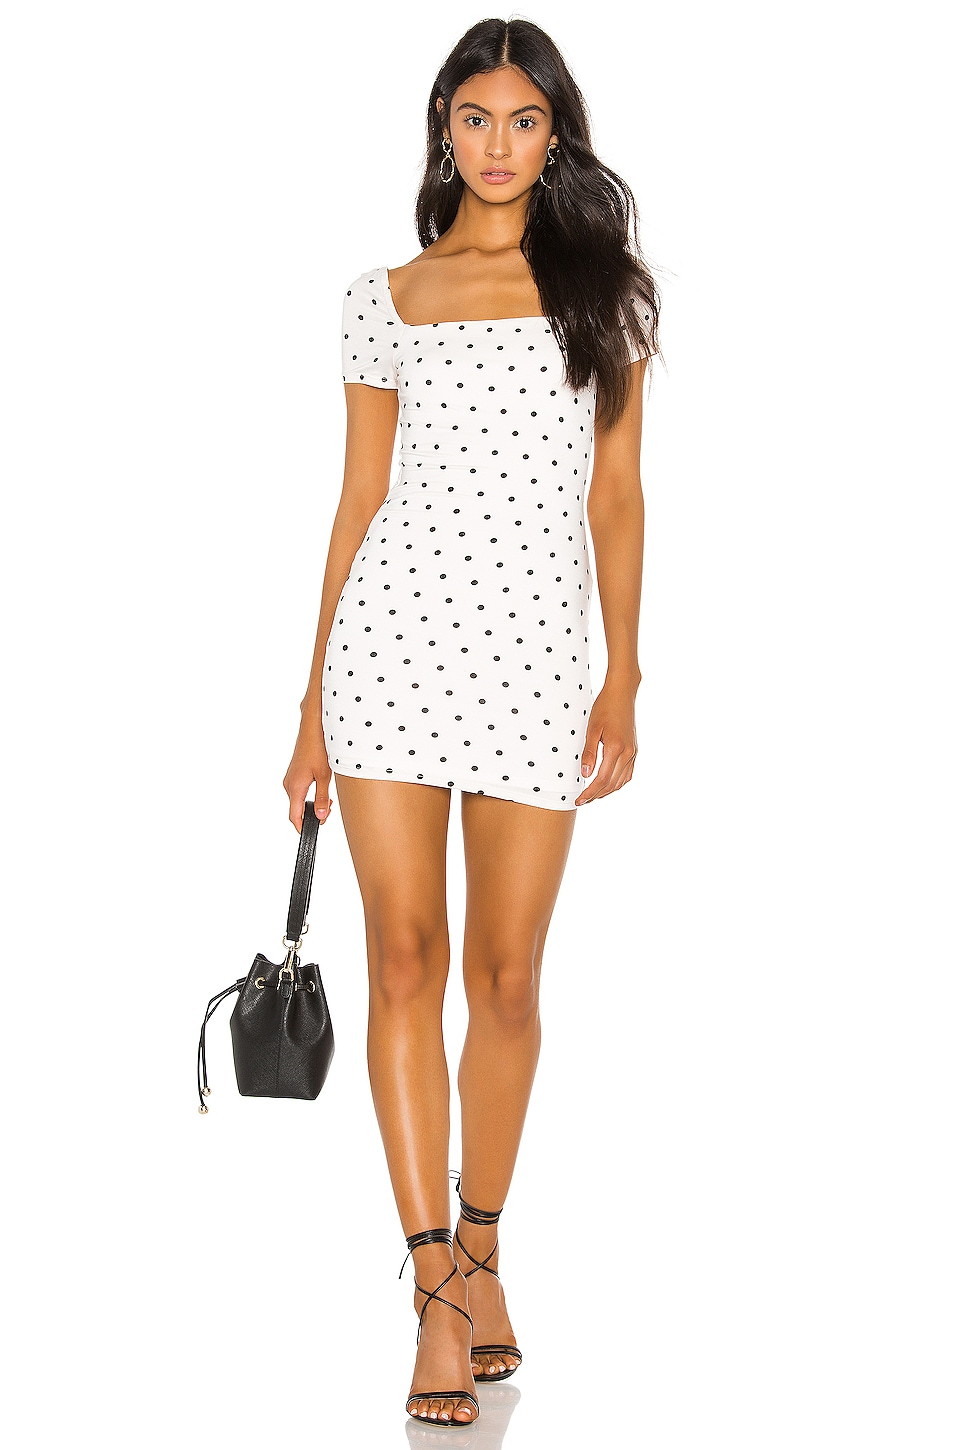 Privacy Please Cora Mini Dress in Black Dot